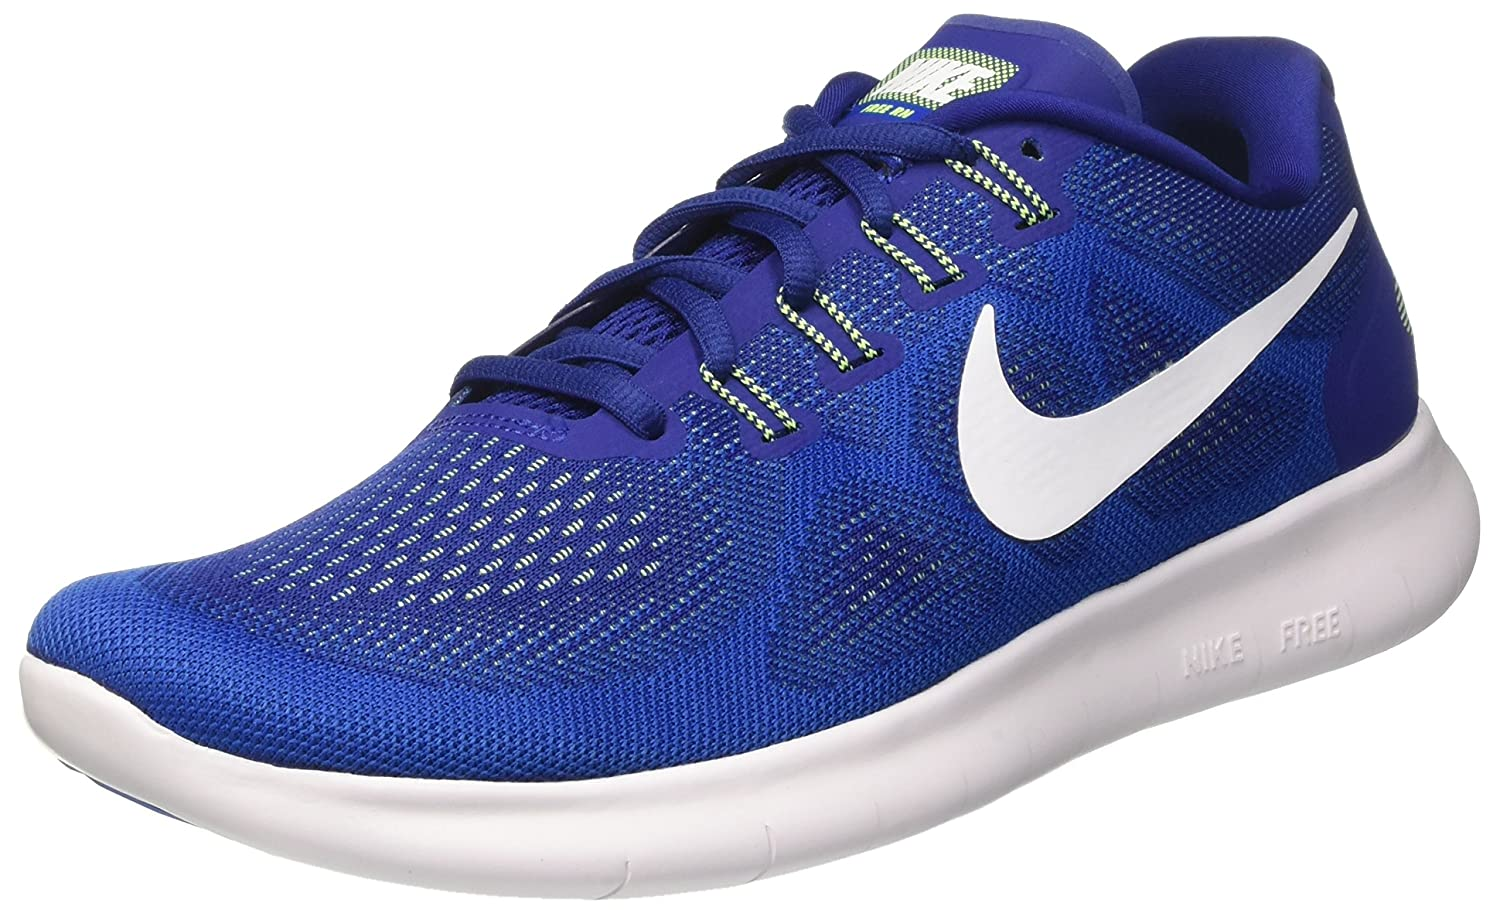 NIKE Men's Free RN Running Shoe B01JZQPUBI 8.5 D(M) US|Deep Royal Blue/White/Soar/Ghost Green